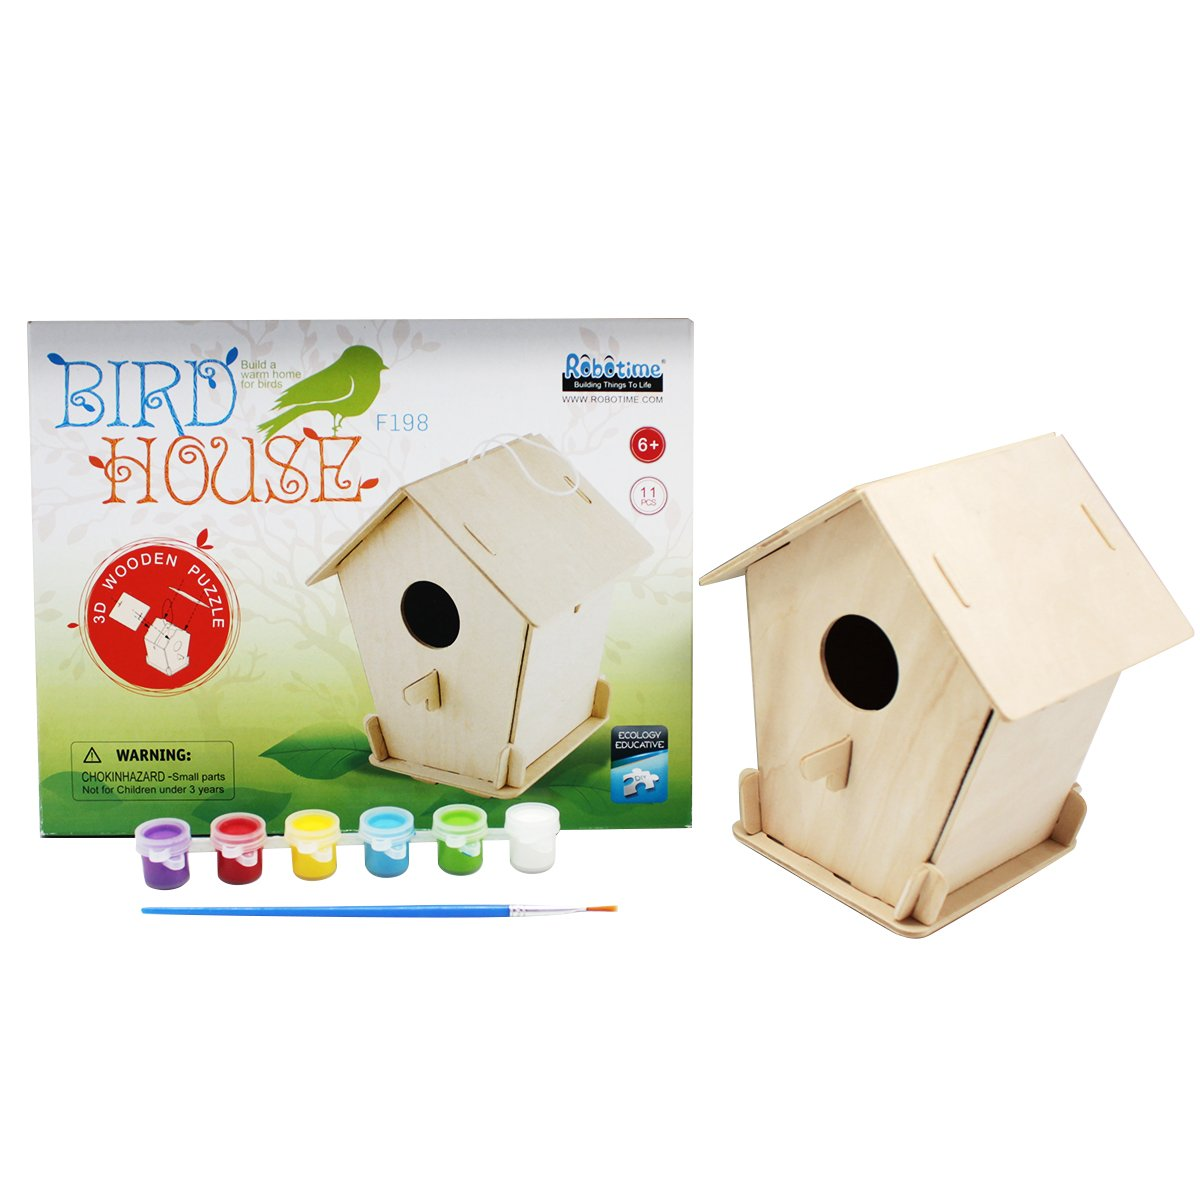 ROBUD Art Craft Wood Toys 3-D Painting Puzzle Bird House DIY Wooden Assembly Modle Building Kits with 6 Color Pigments /& Brush for Kid Children Educational Fun Creative Gifts